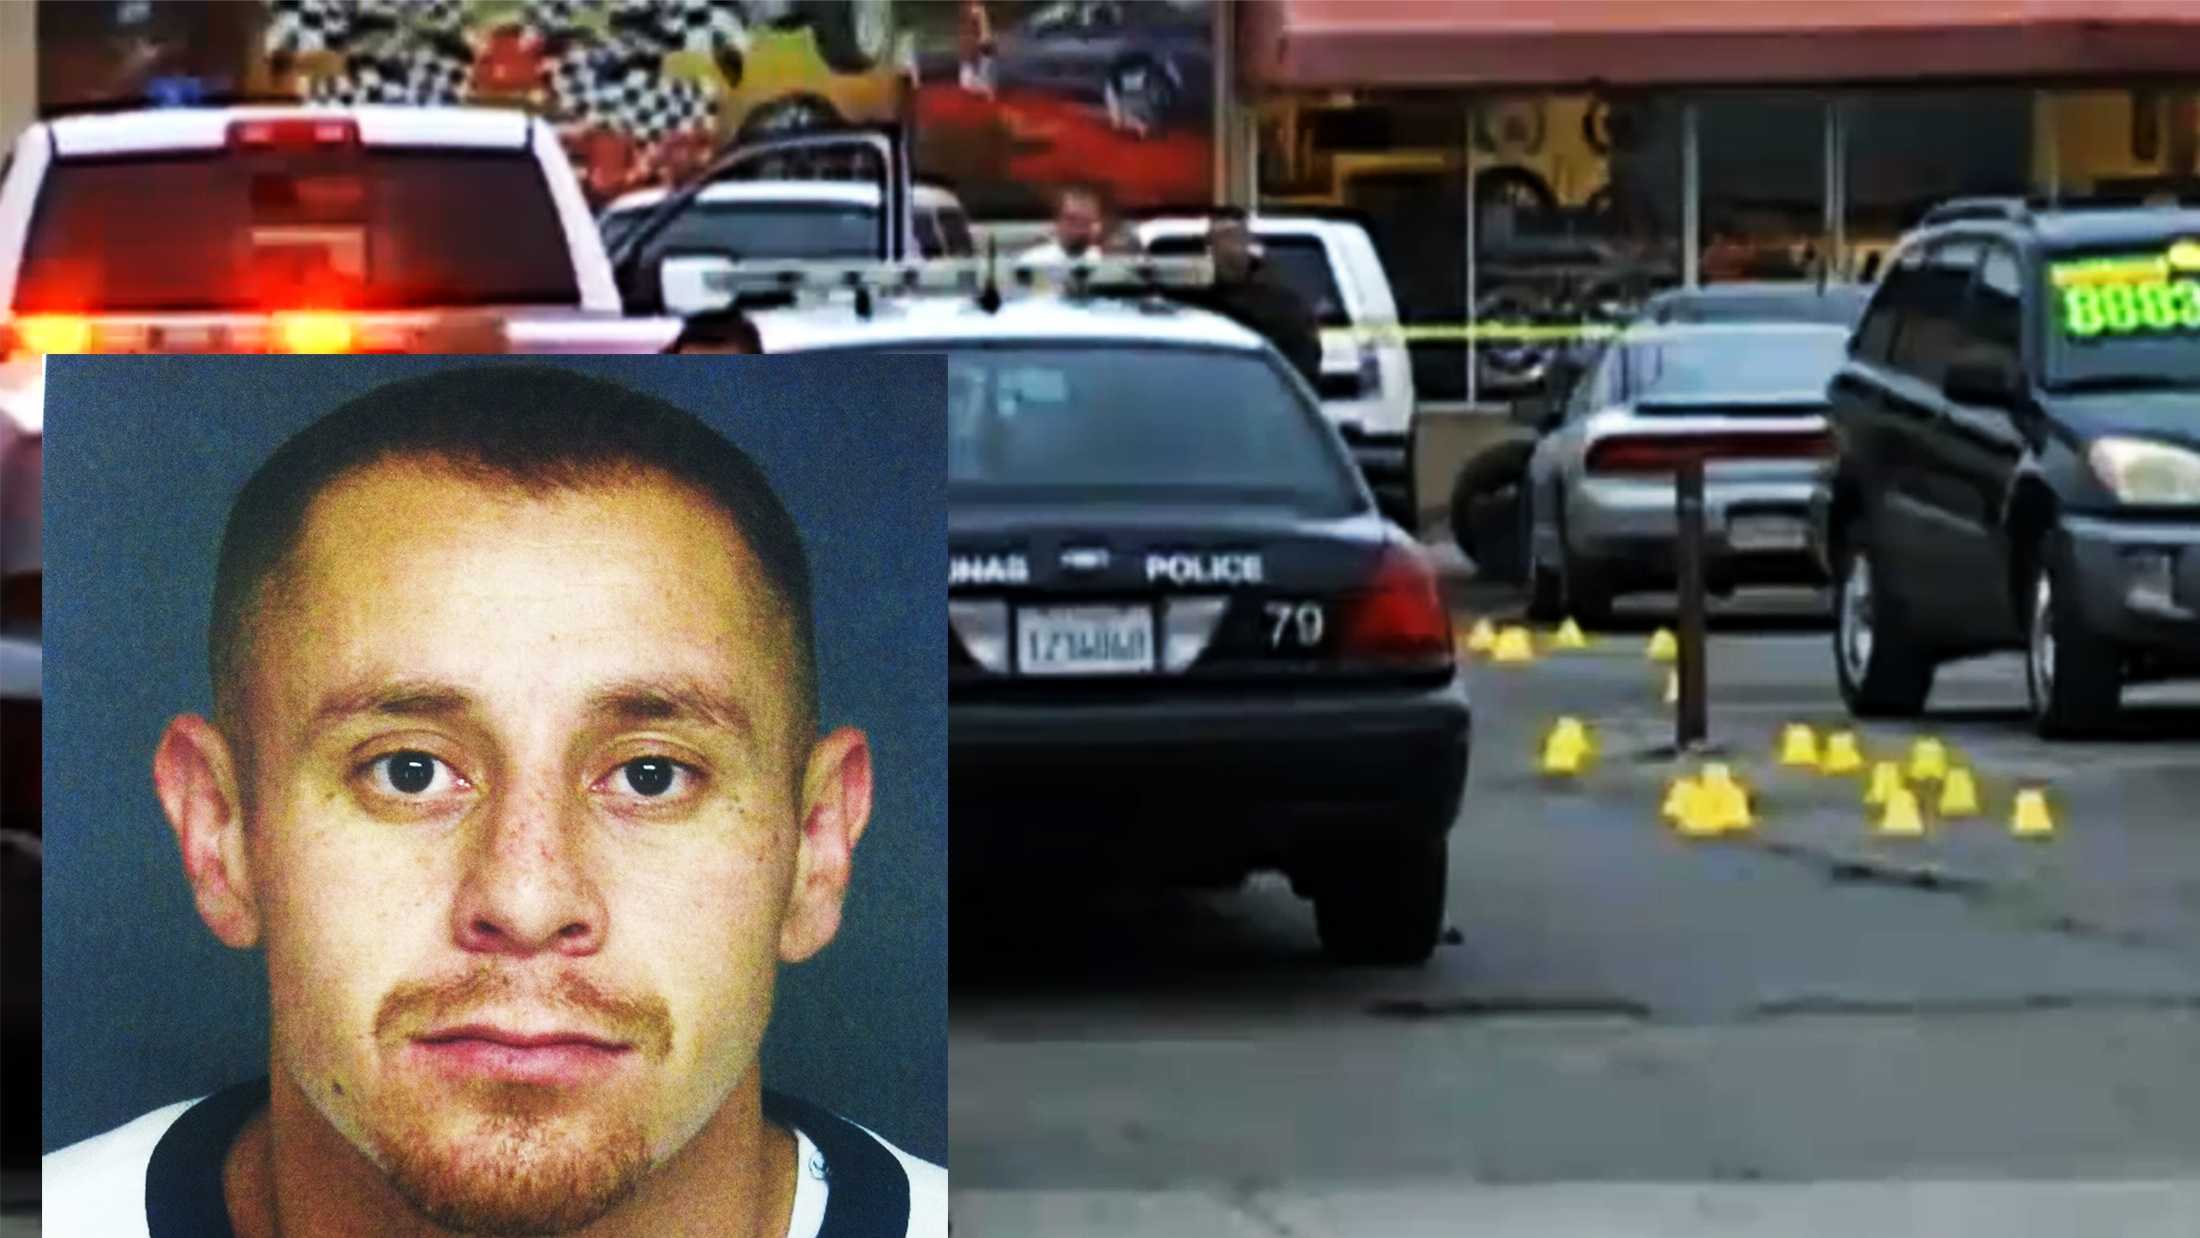 Juan Luis Acuna, 30, was killed by Salinas police here, at 131 Kern St. (July 26, 2013)